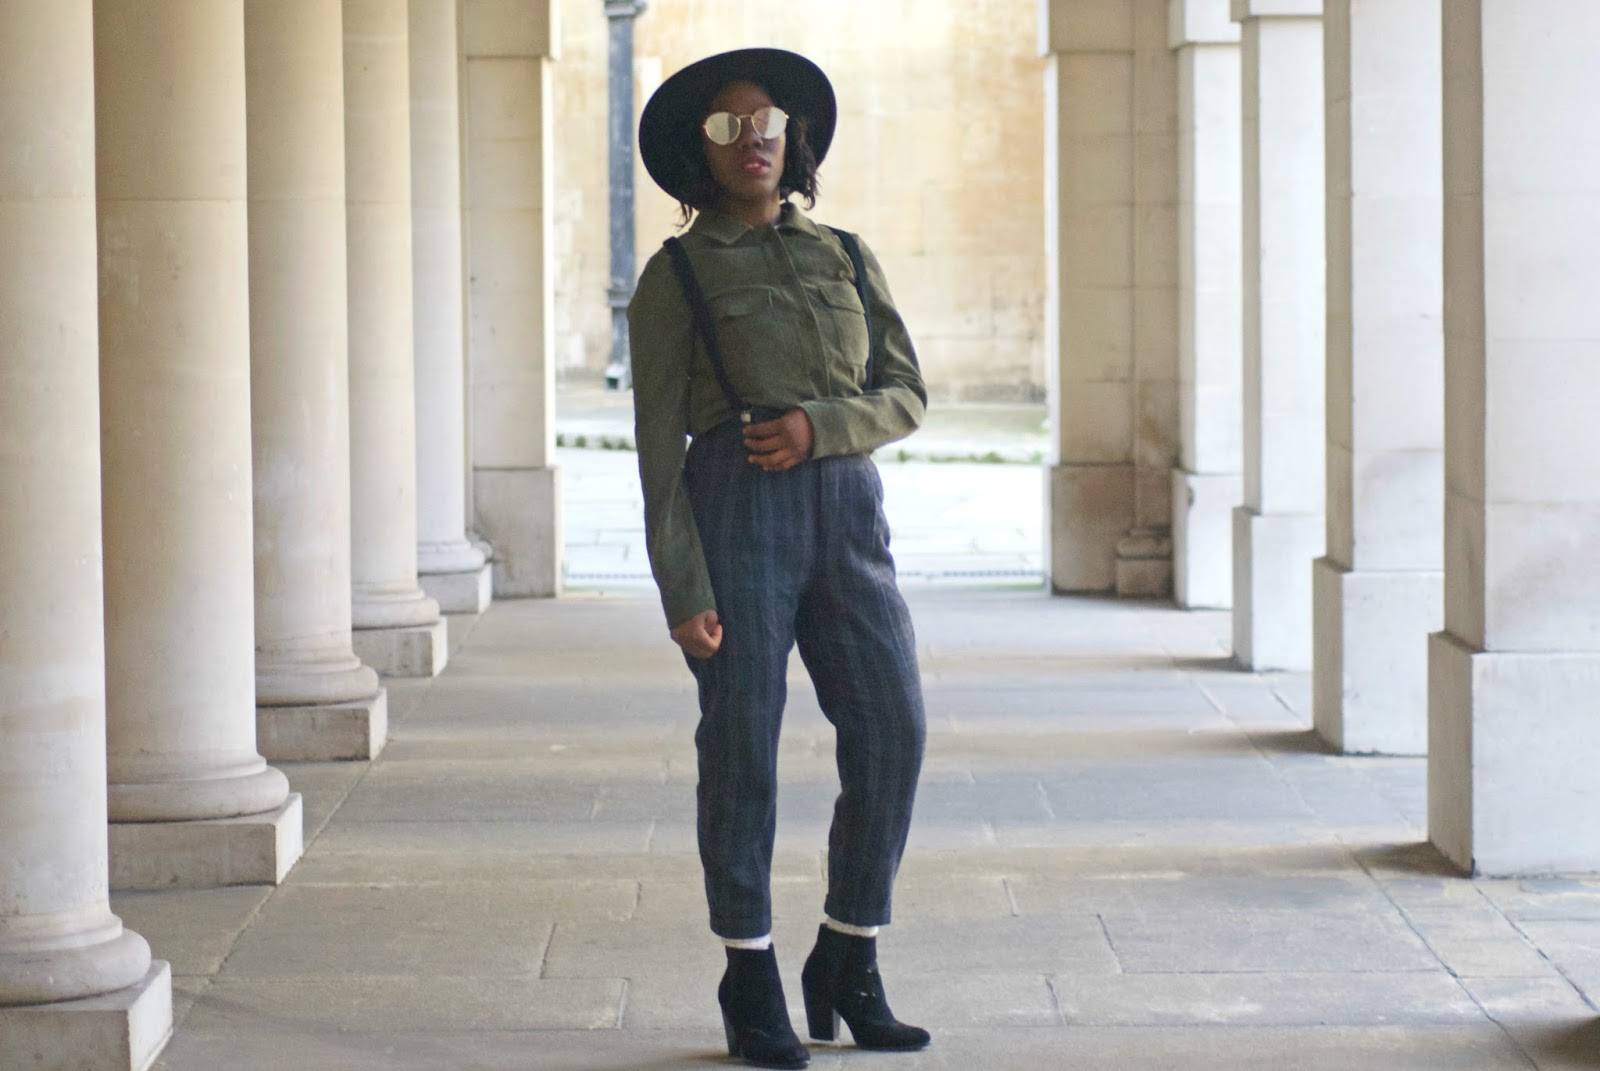 Blogger, Fashion Blogger, Zara plaid trousers, braces, suspenders, corduroy shirt, oversized woman shirt, boohoo oversized shirt, black fedora, asos aviators, temple church area,temple, uk blogger, new look black ankle boots